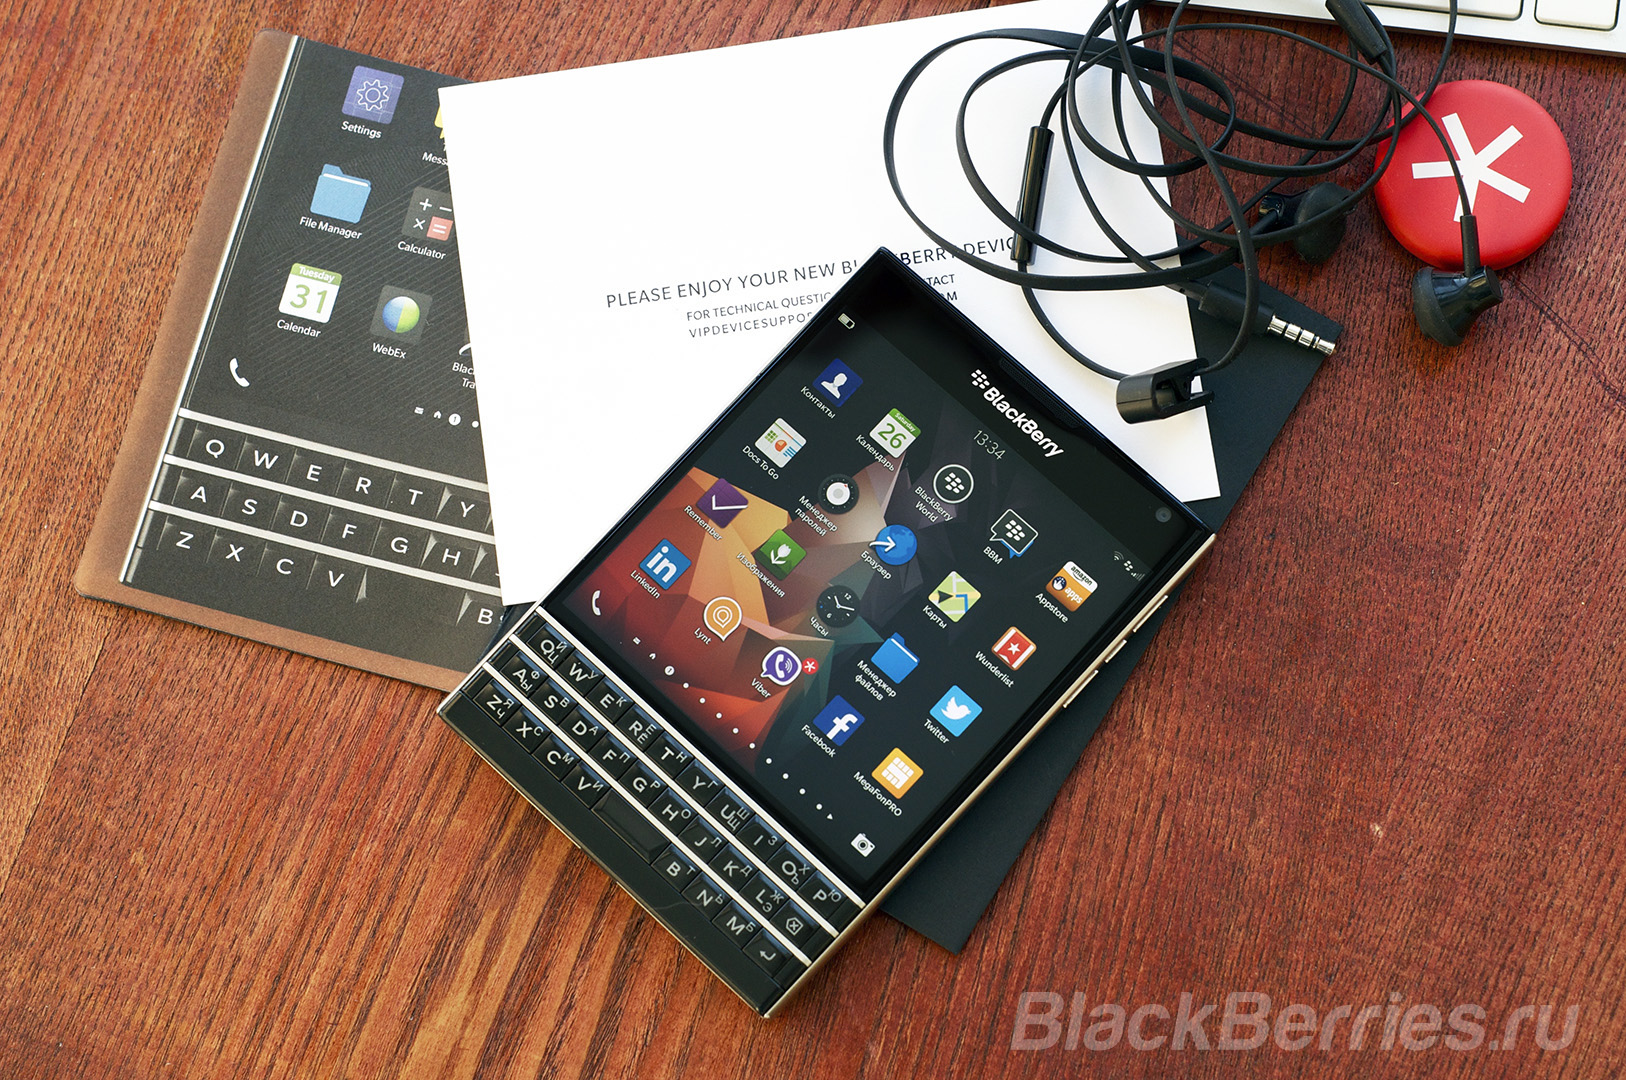 BlackBerry-Passport-Review-2016-47